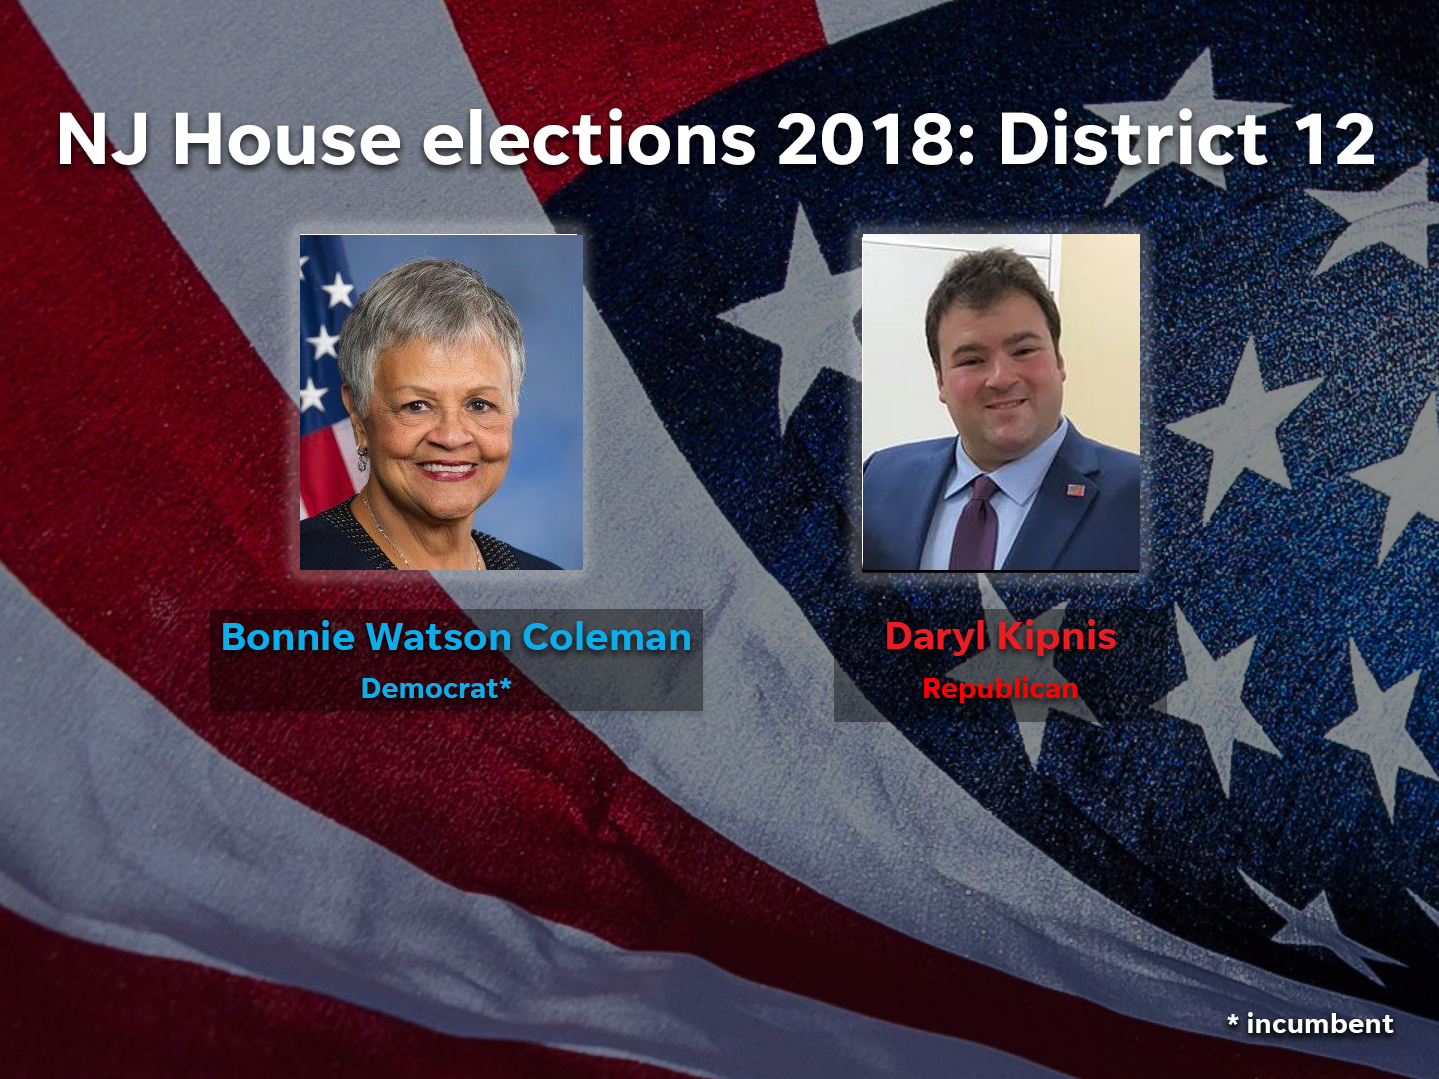 Bonnie Watson Coleman (D) and Daryl Kipnis (R) are among the candidates running in District 12 in the 2018 NJ House elections.